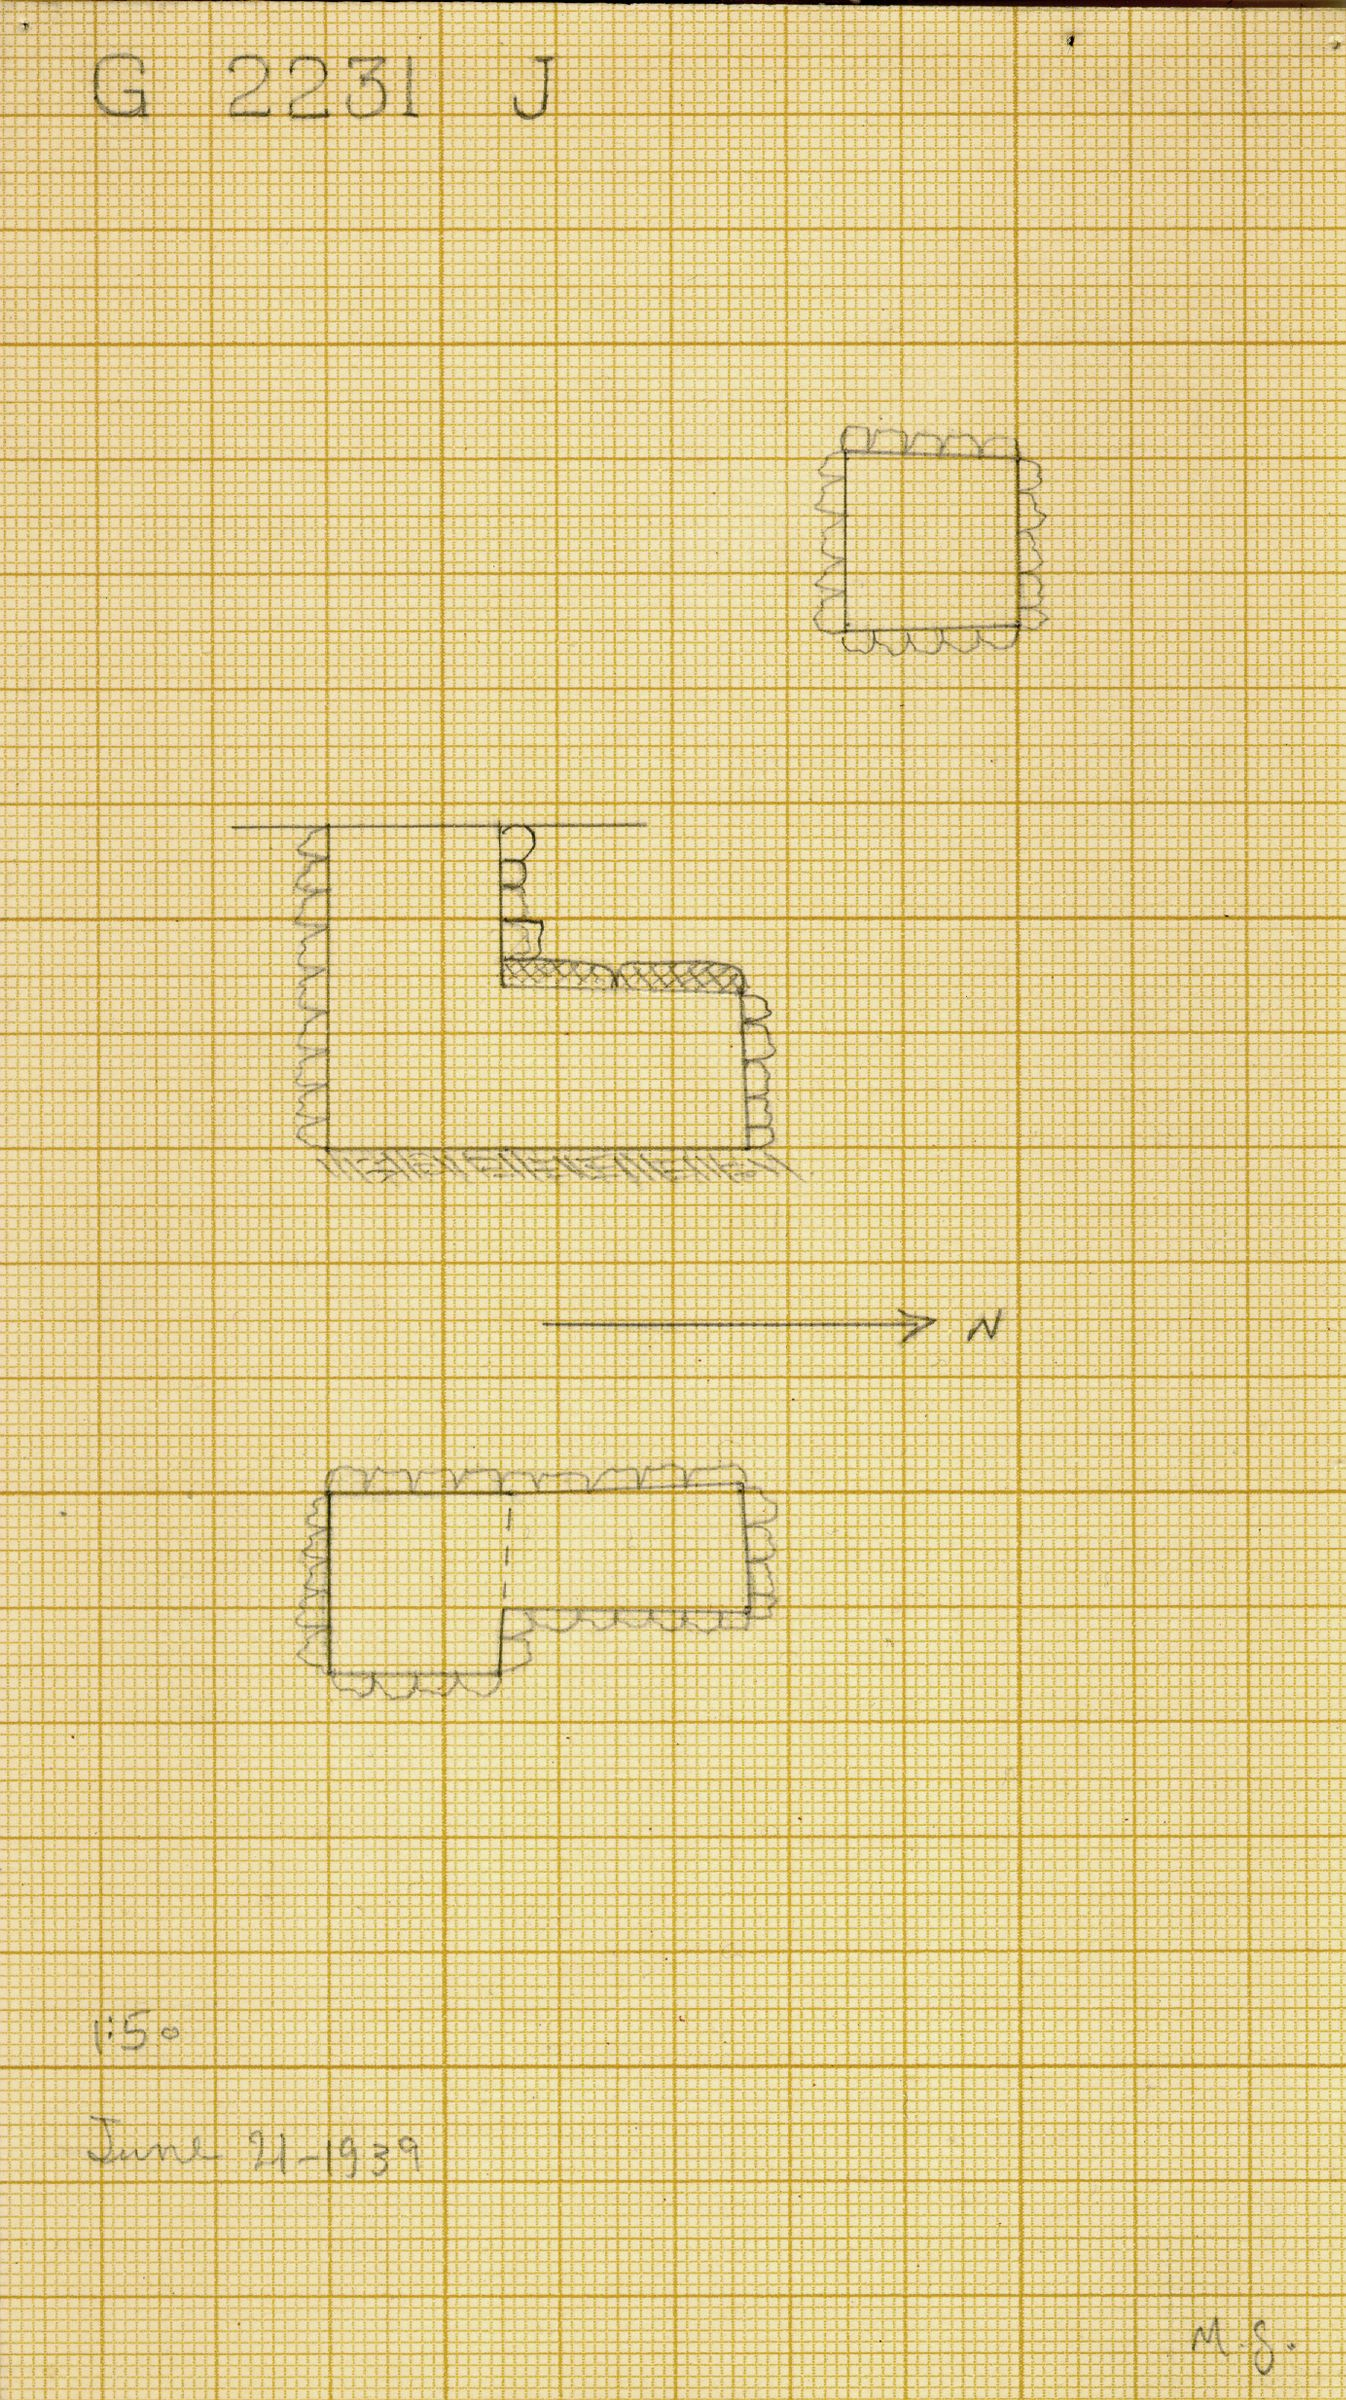 Maps and plans: G 2230+2231: G 2231, Shaft J